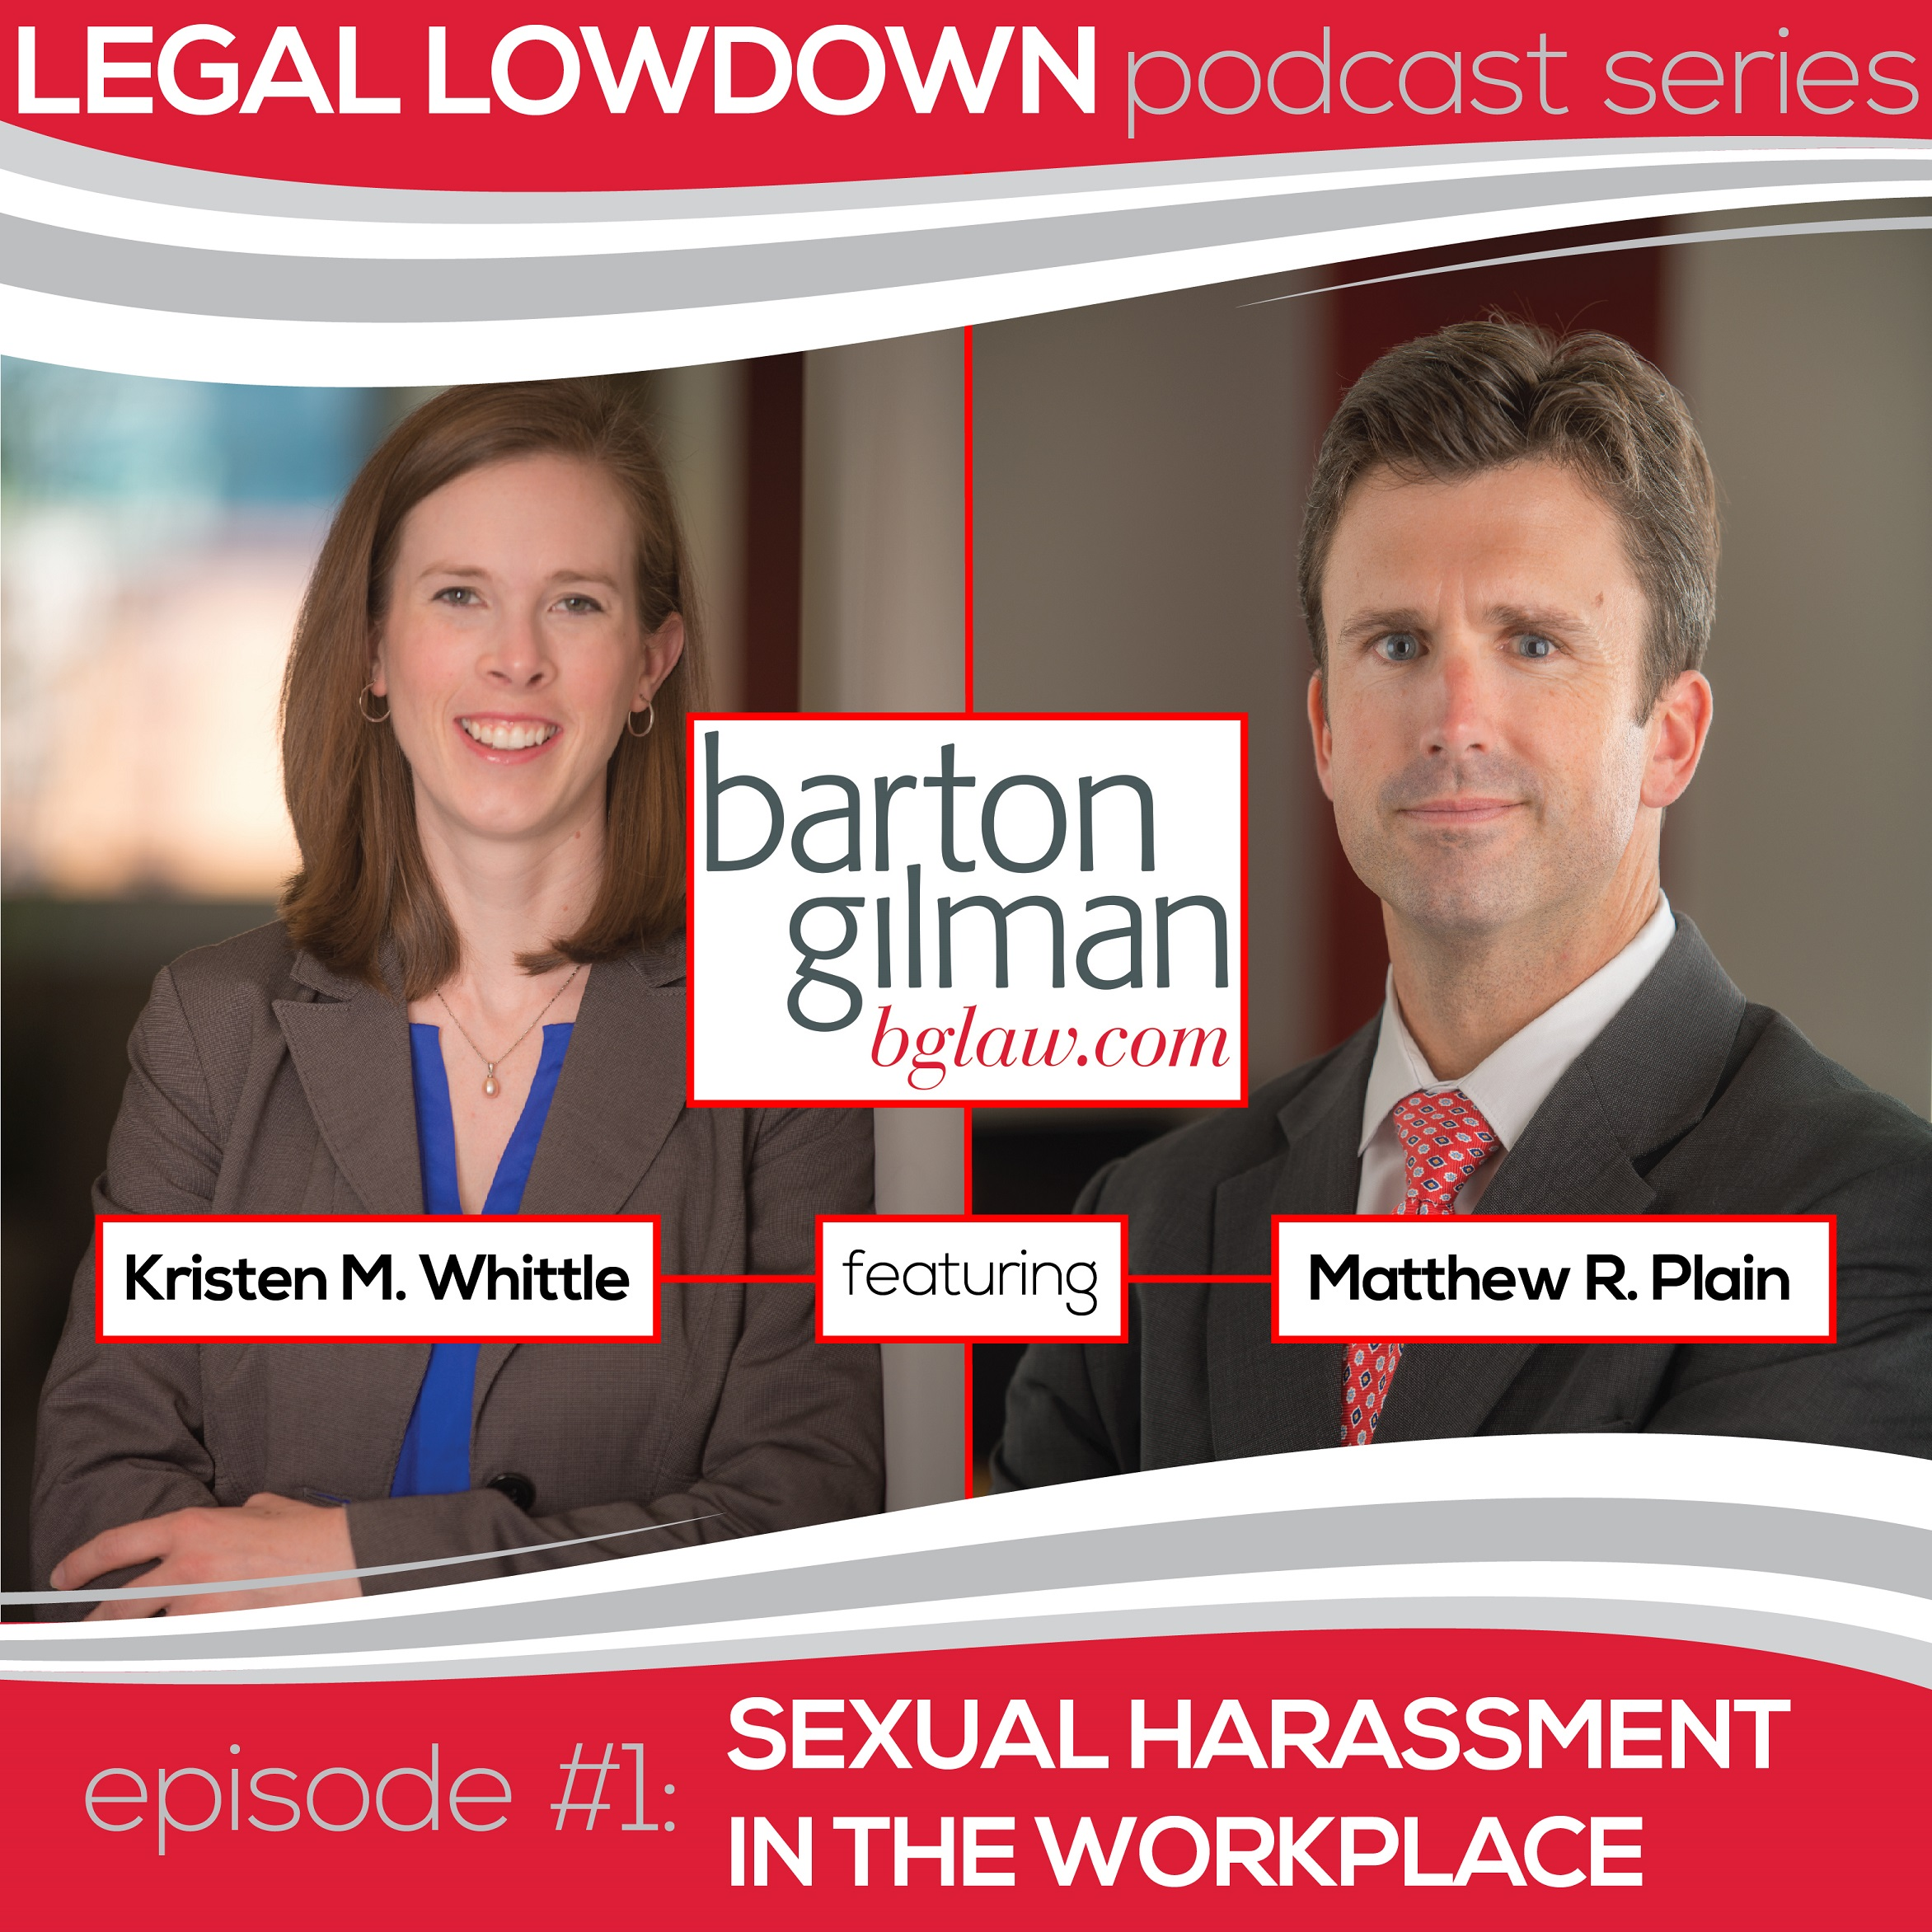 Legal Lowdown Podcast – Episode #1 – Sexual Harassment in the Workplace